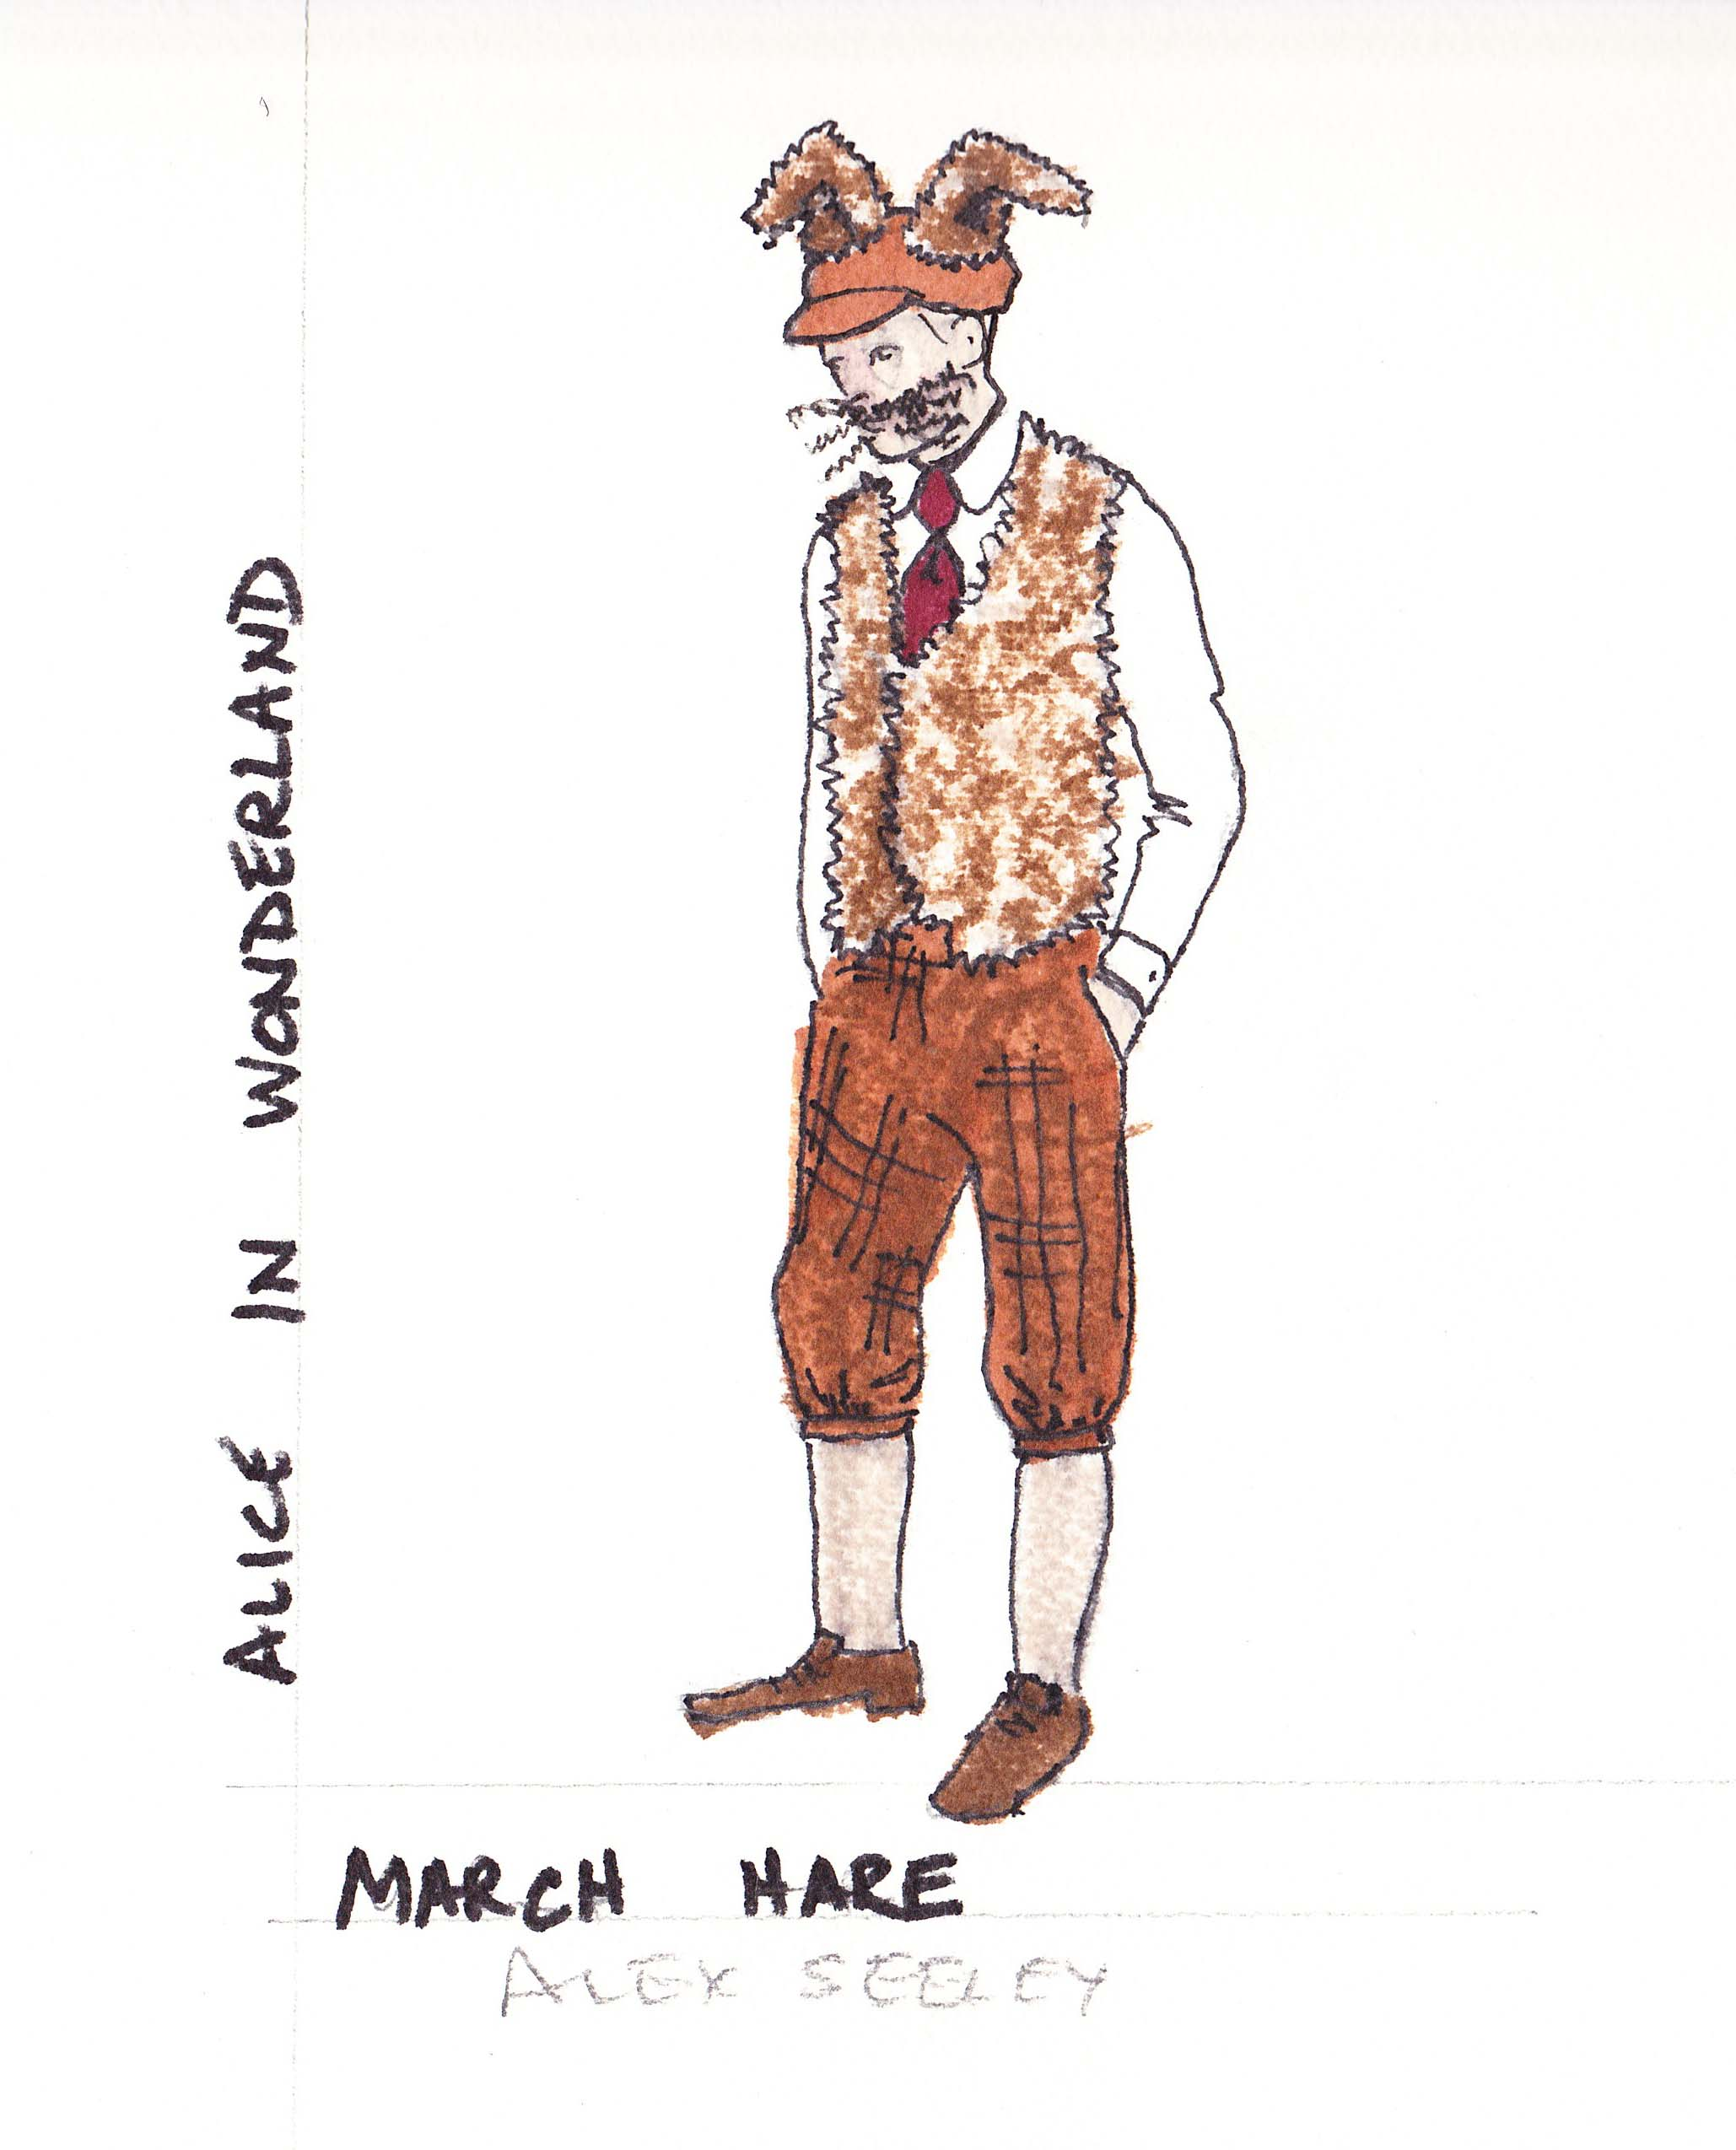 March Hare Alice In Wonderland: The Yellow Brick Road